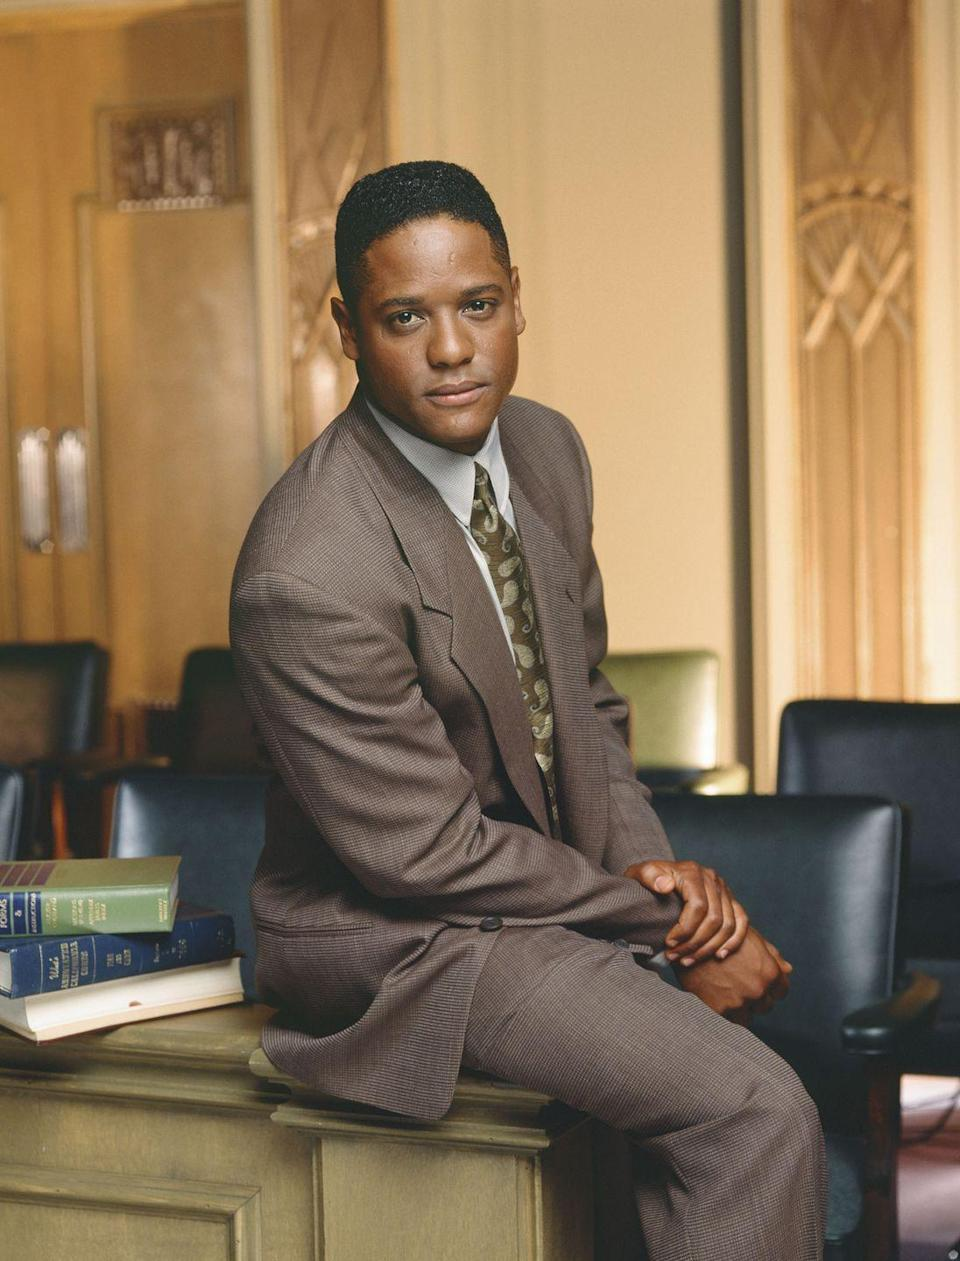 "<p>This handsome fellow's career kicked off with appearances on <em>The Cosby Show</em> and a recurring role on <em>One Life to Live</em><span class=""redactor-invisible-space"">, but he really shot to stardom with his role as Jonathan Rollins on <em>L.A. Law</em><span class=""redactor-invisible-space""> from 1987 to 1994.</span></span></p>"